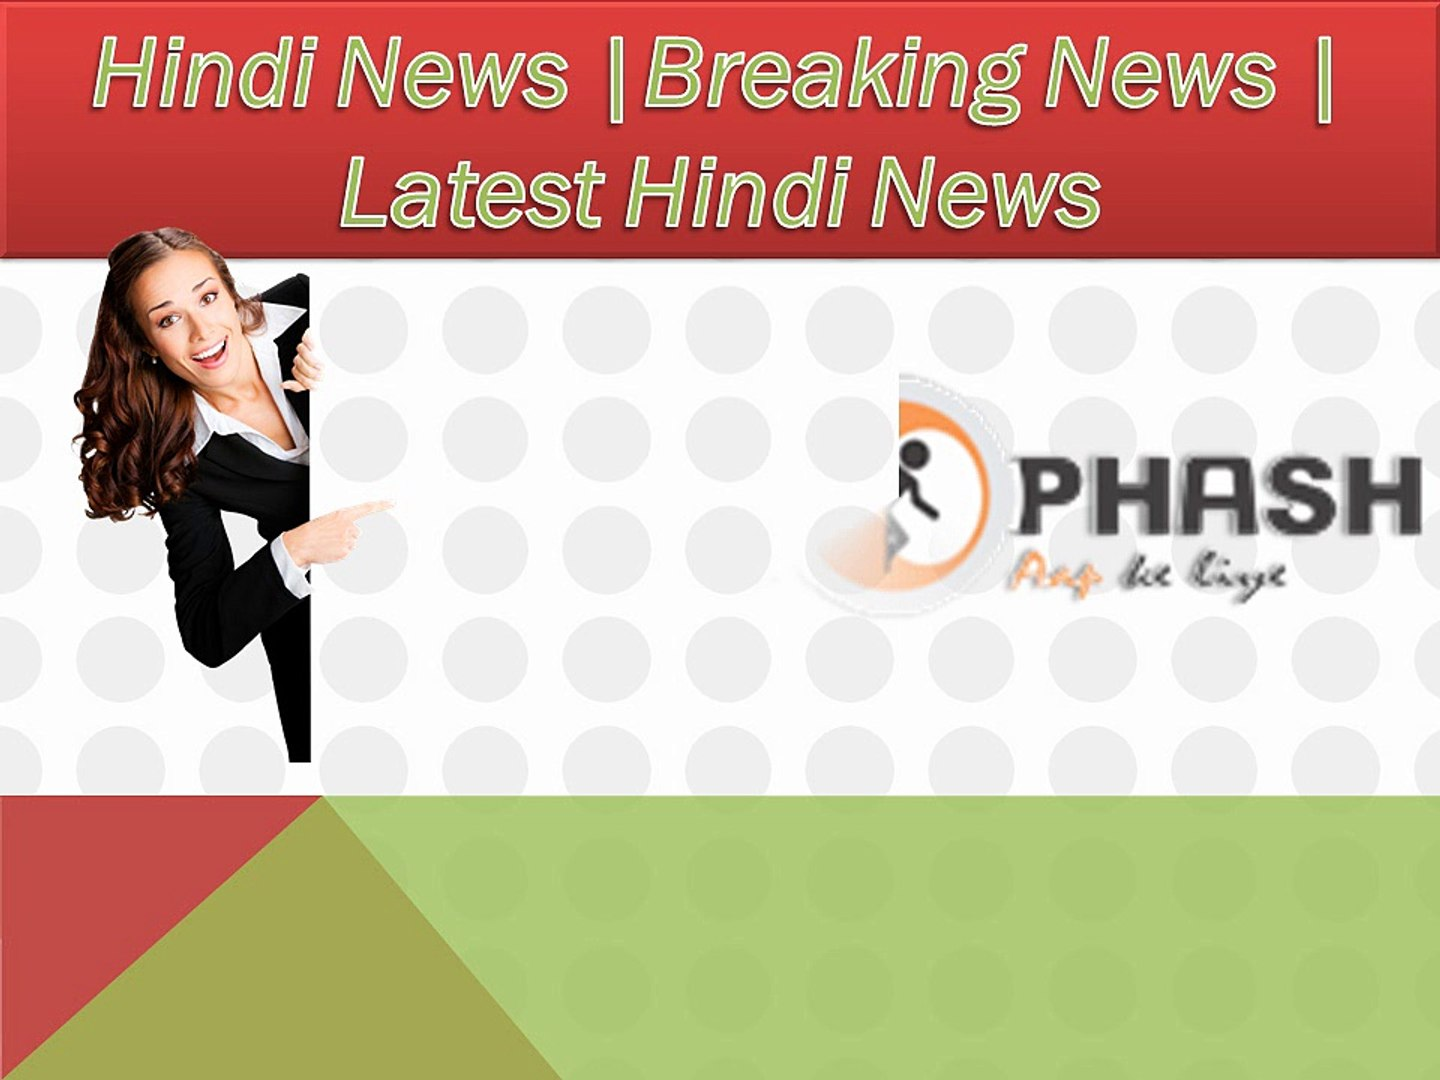 Pardaphash.com: Latest News, India News, Business, Cricket, Bollywood, Video & Breaking News